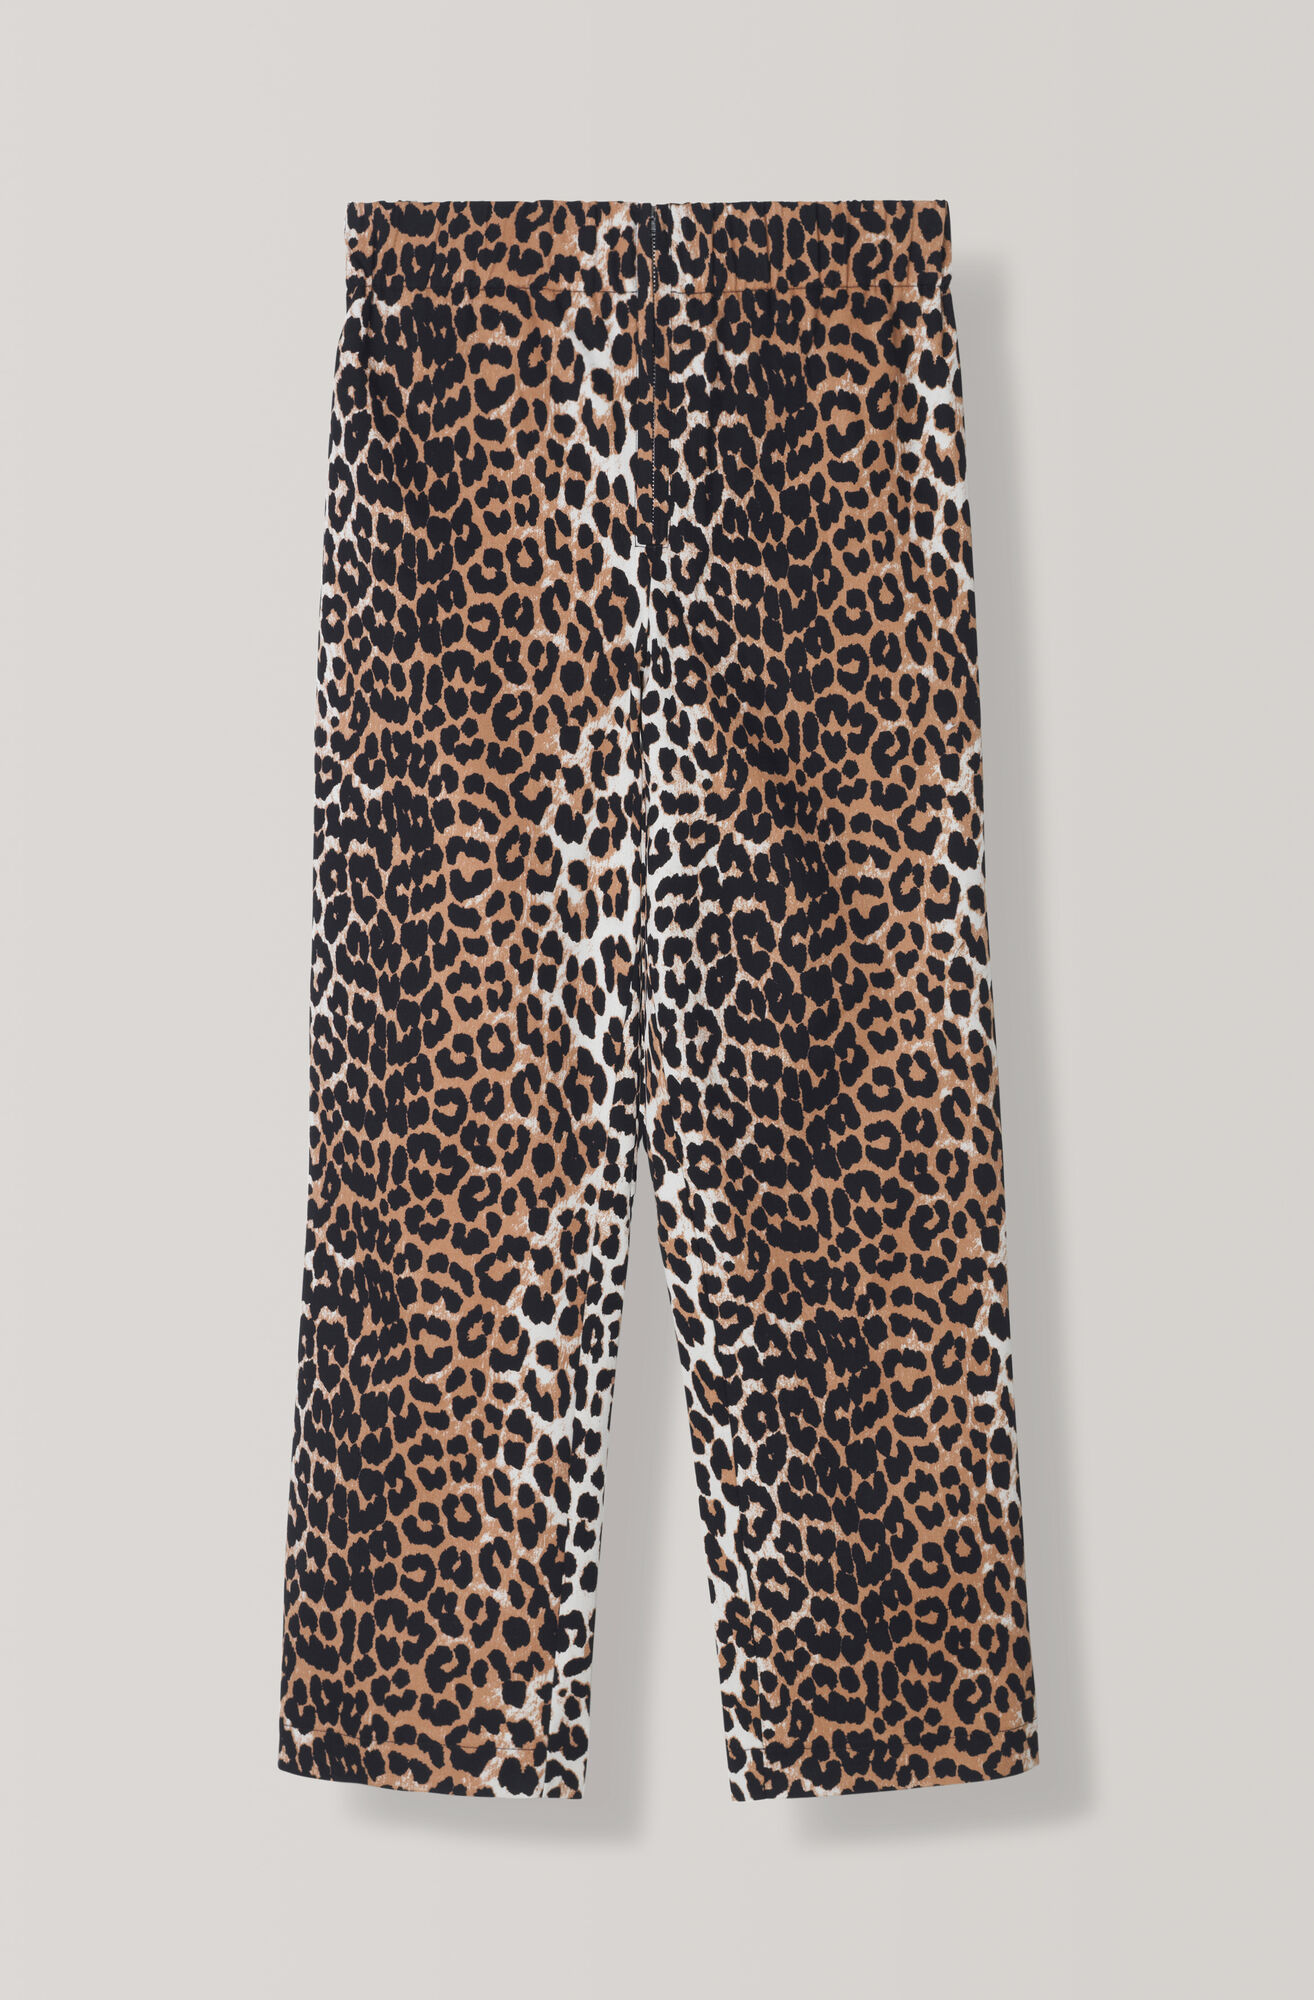 Fabre Cotton Pants, Leopard, hi-res